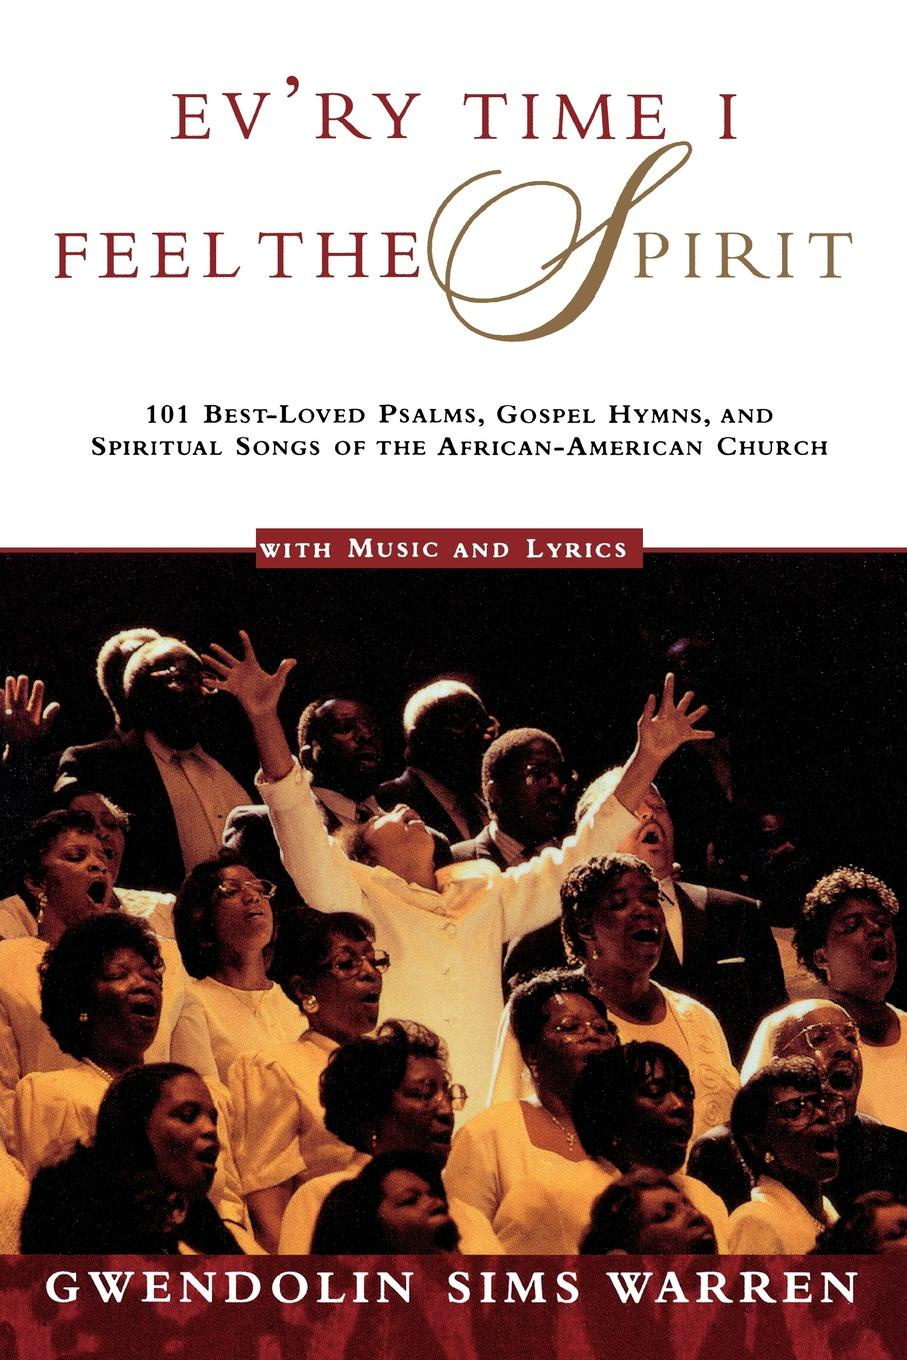 Gwendolin Sims Warren Ev'ry Time I Feel the Spirit. 101 Best-Loved Psalms, Gospel Hymns & Spiritual Songs of the African-American Church blender 50 worst songs of all time